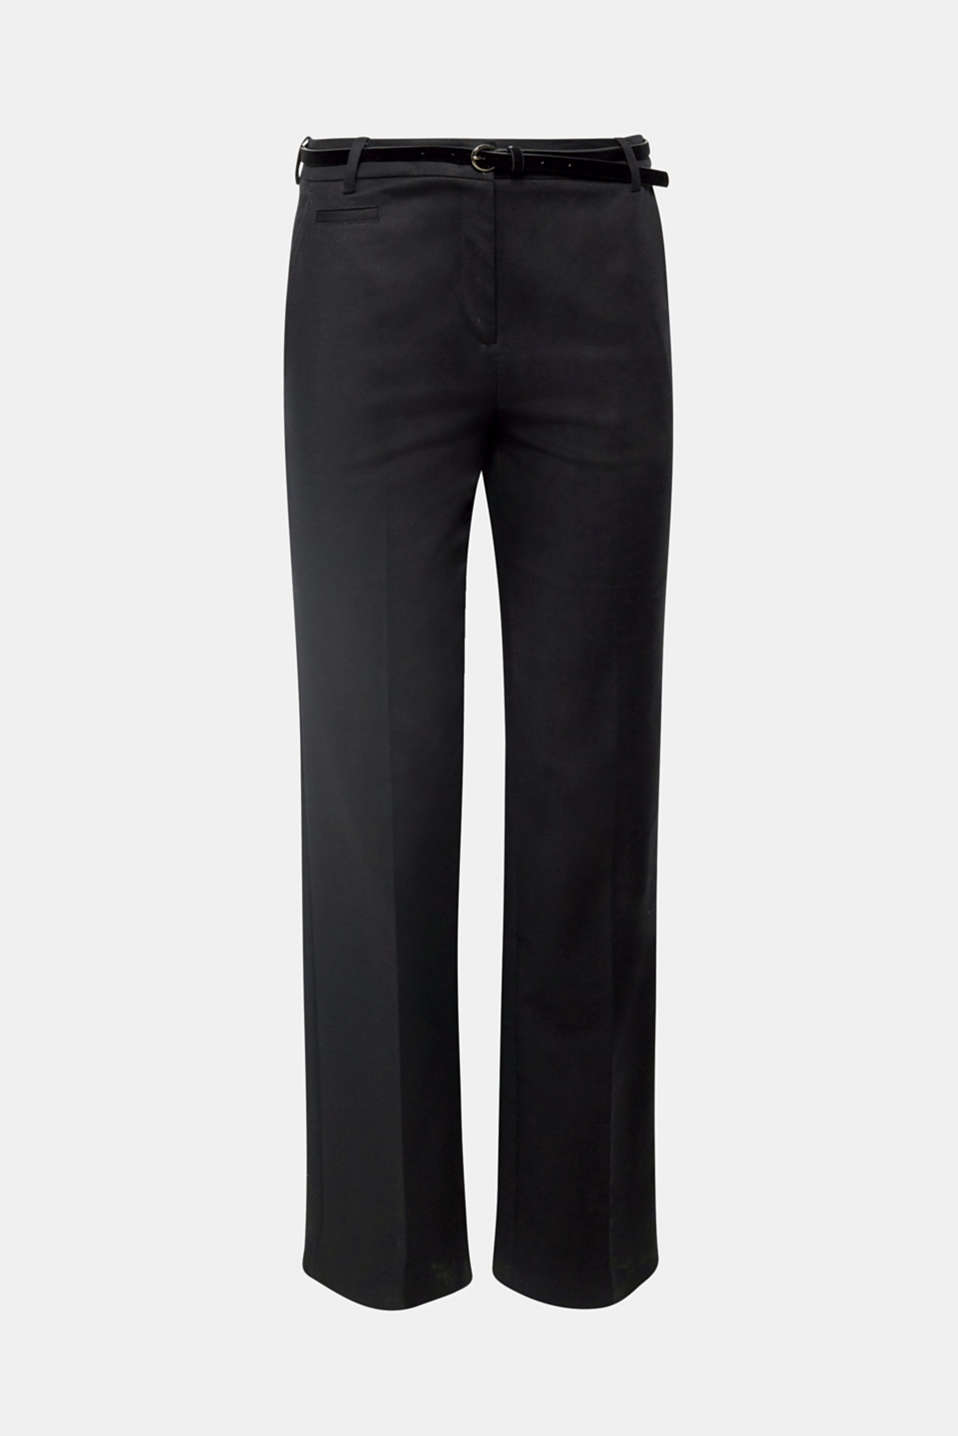 Modern classic with a velvet belt: These timeless stretch cotton trousers with a straight leg and pressed pleats are suitable for business, work or special occasions!